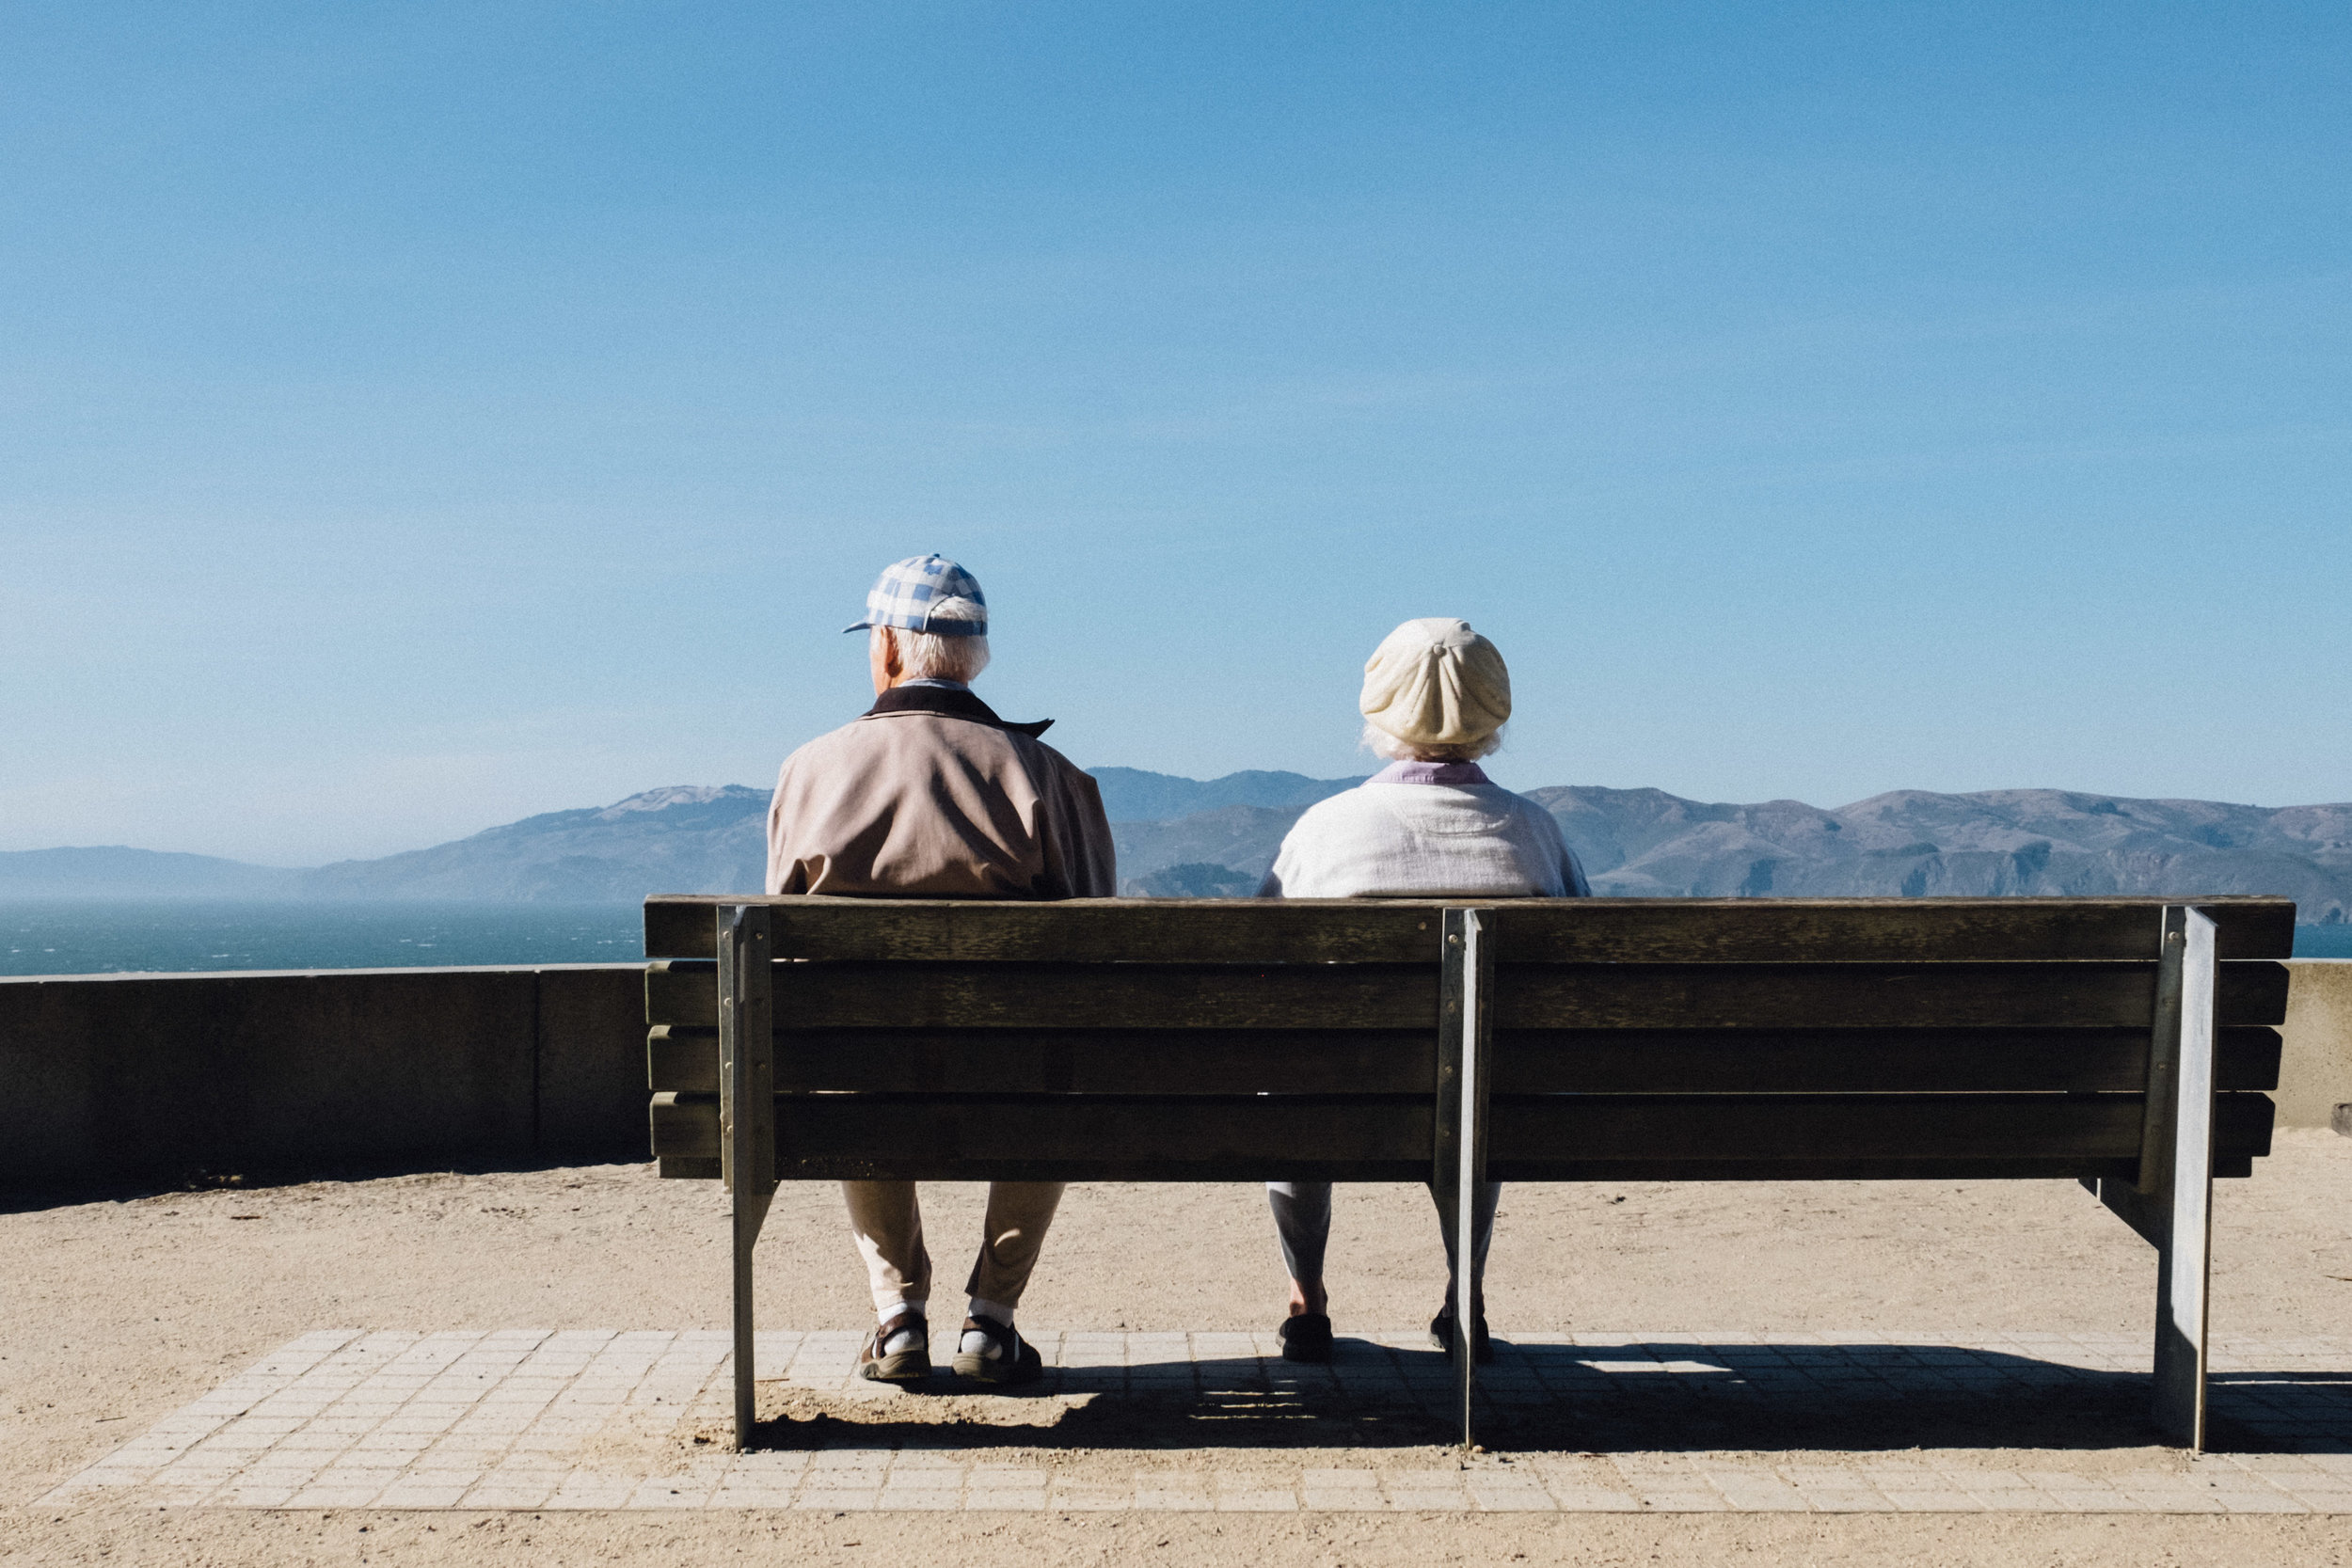 Guardianships & Conservatorships - Do you have a family member or loved one who is struggling with mental health or problematic addictions? You may want to explore a guardianship or conservatorship for help.